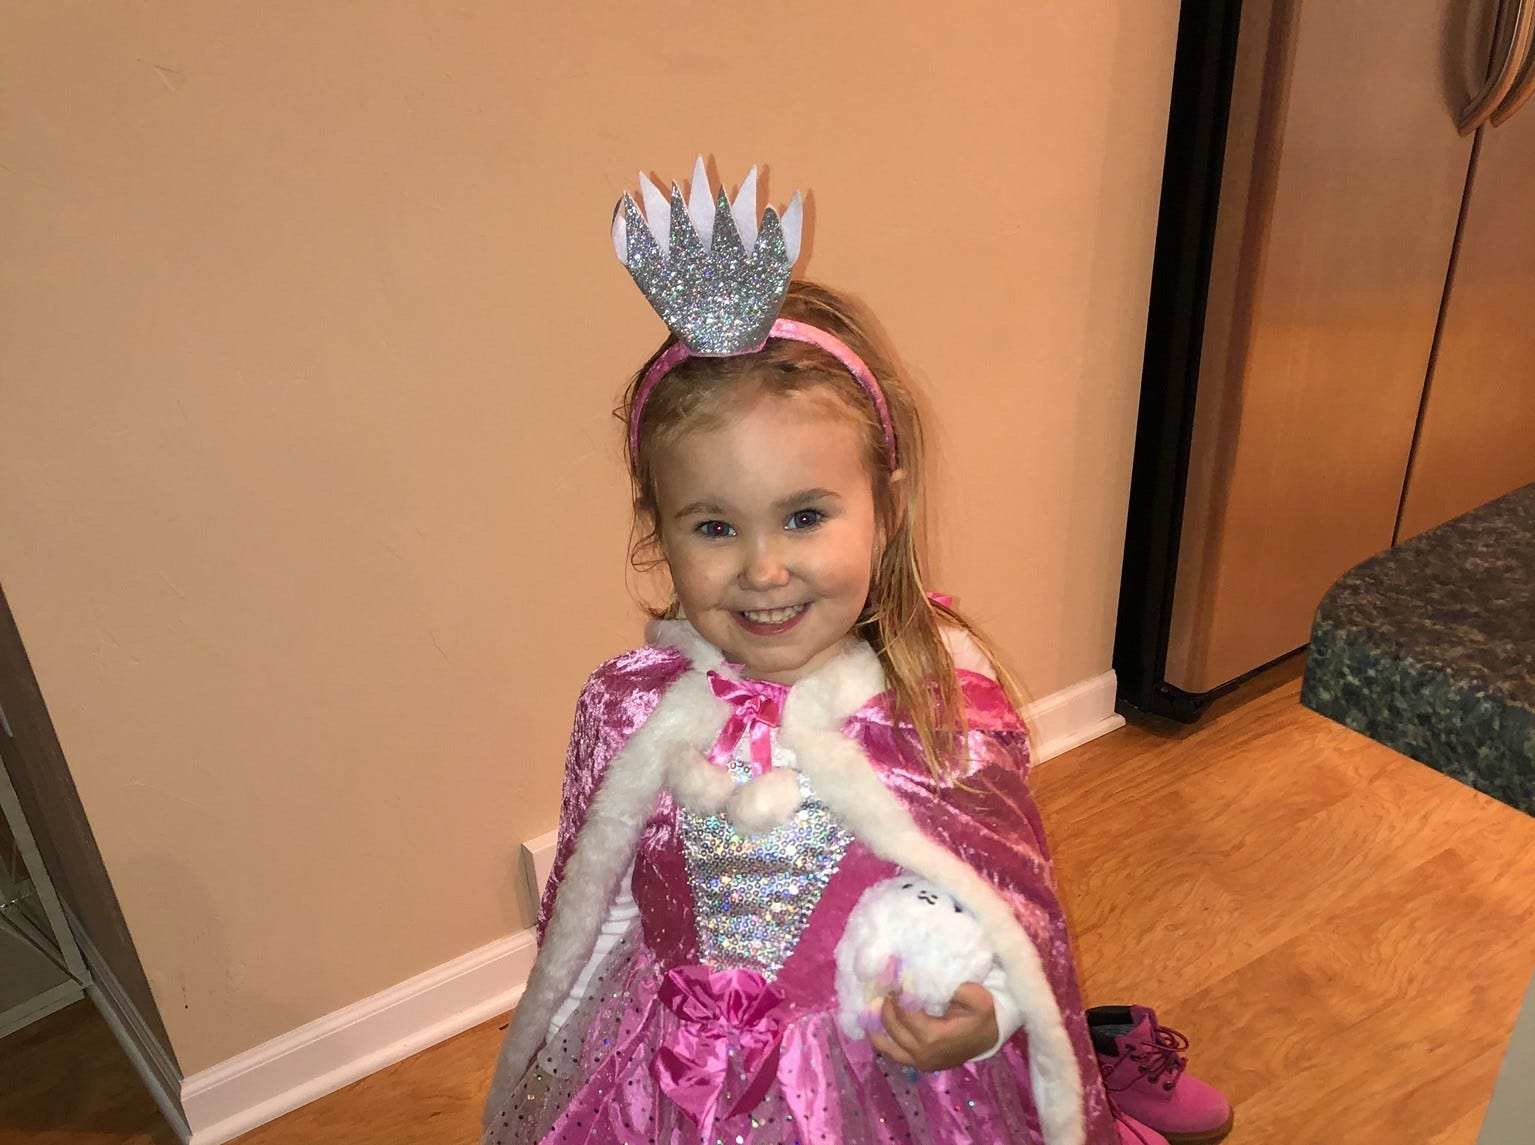 Kendall, 3, all dressed up for Halloween.  Her grandma is Cathy of Greenville.